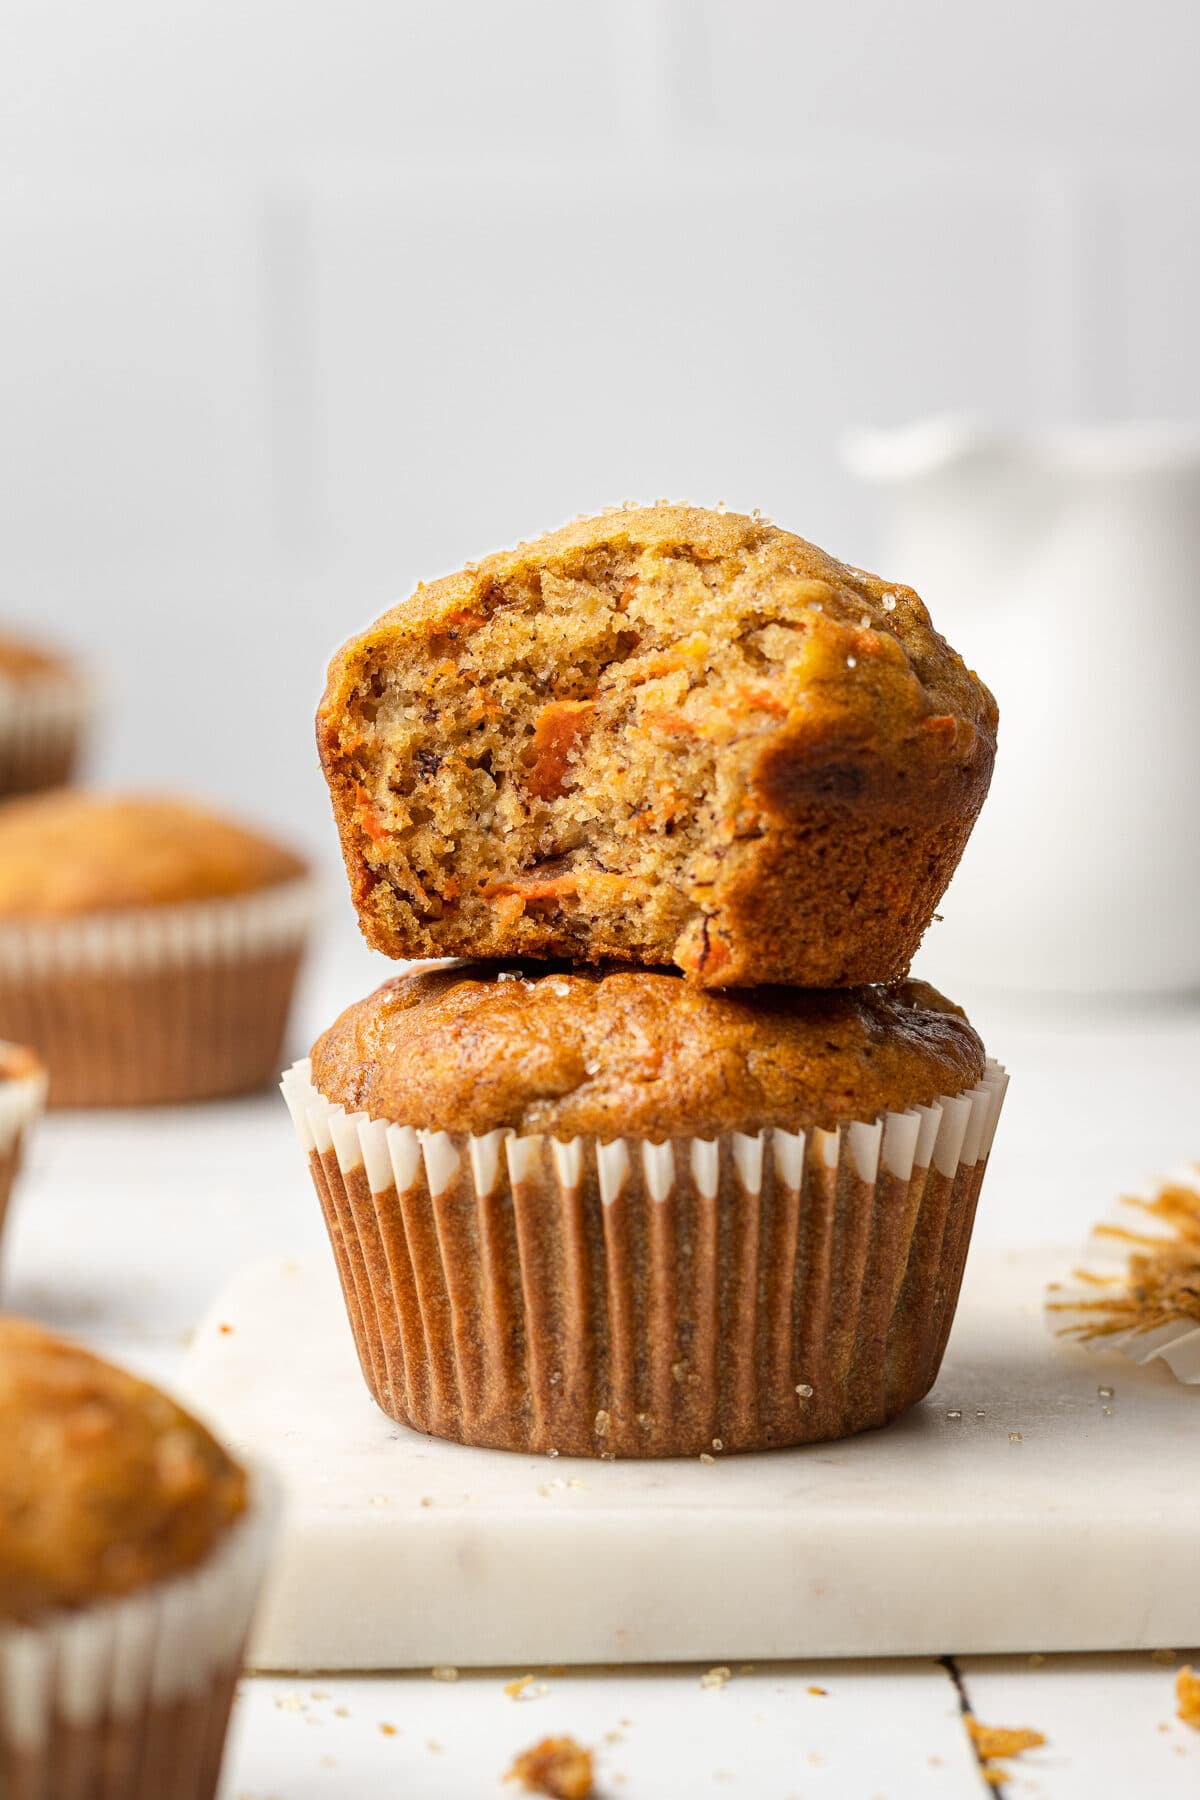 two banana carrot muffins stacked on each other with a bite out of one of them